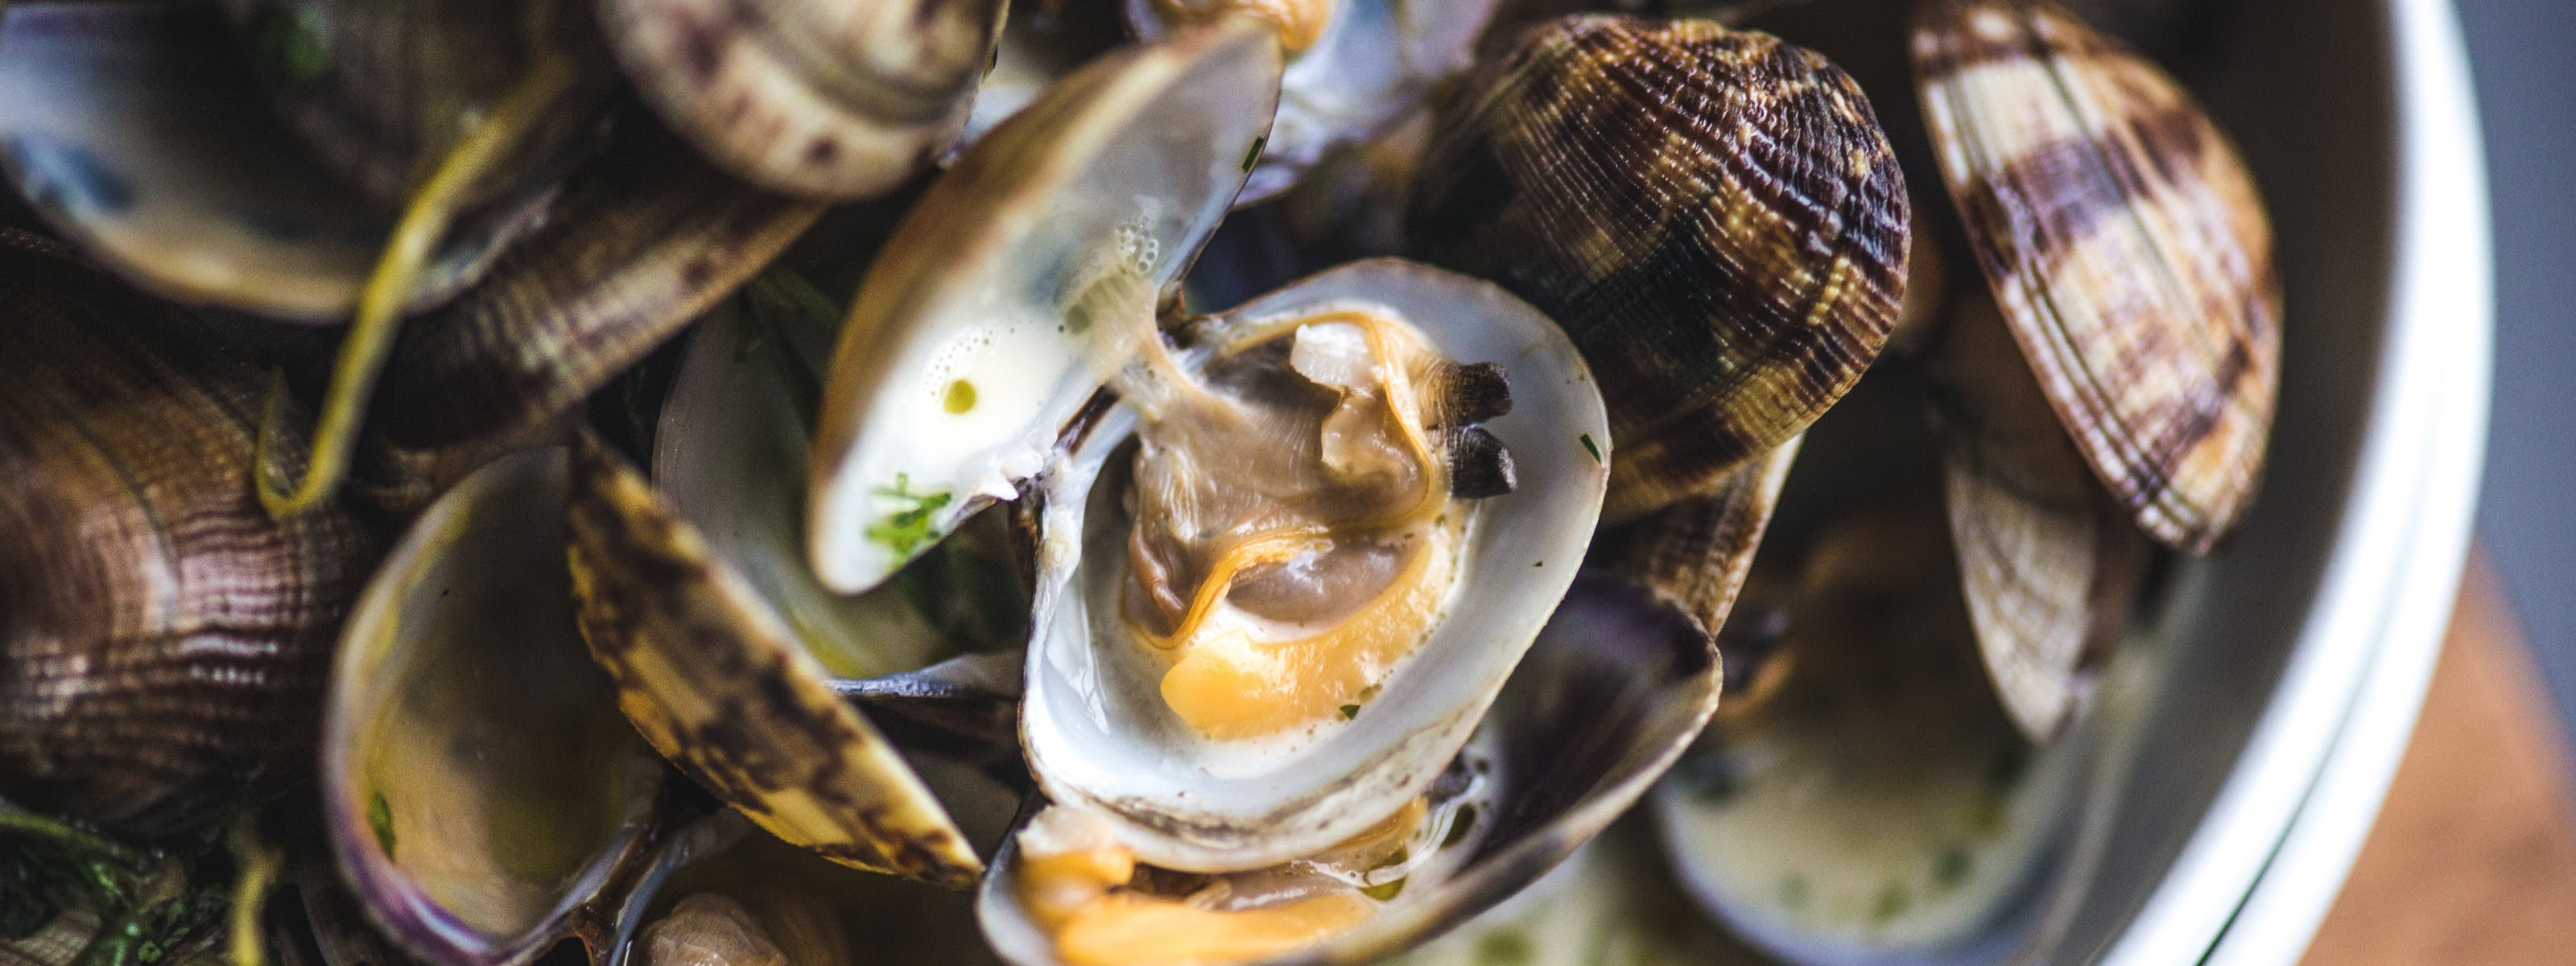 The Best Seafood Markets In Boston - Boston - The Infatuation